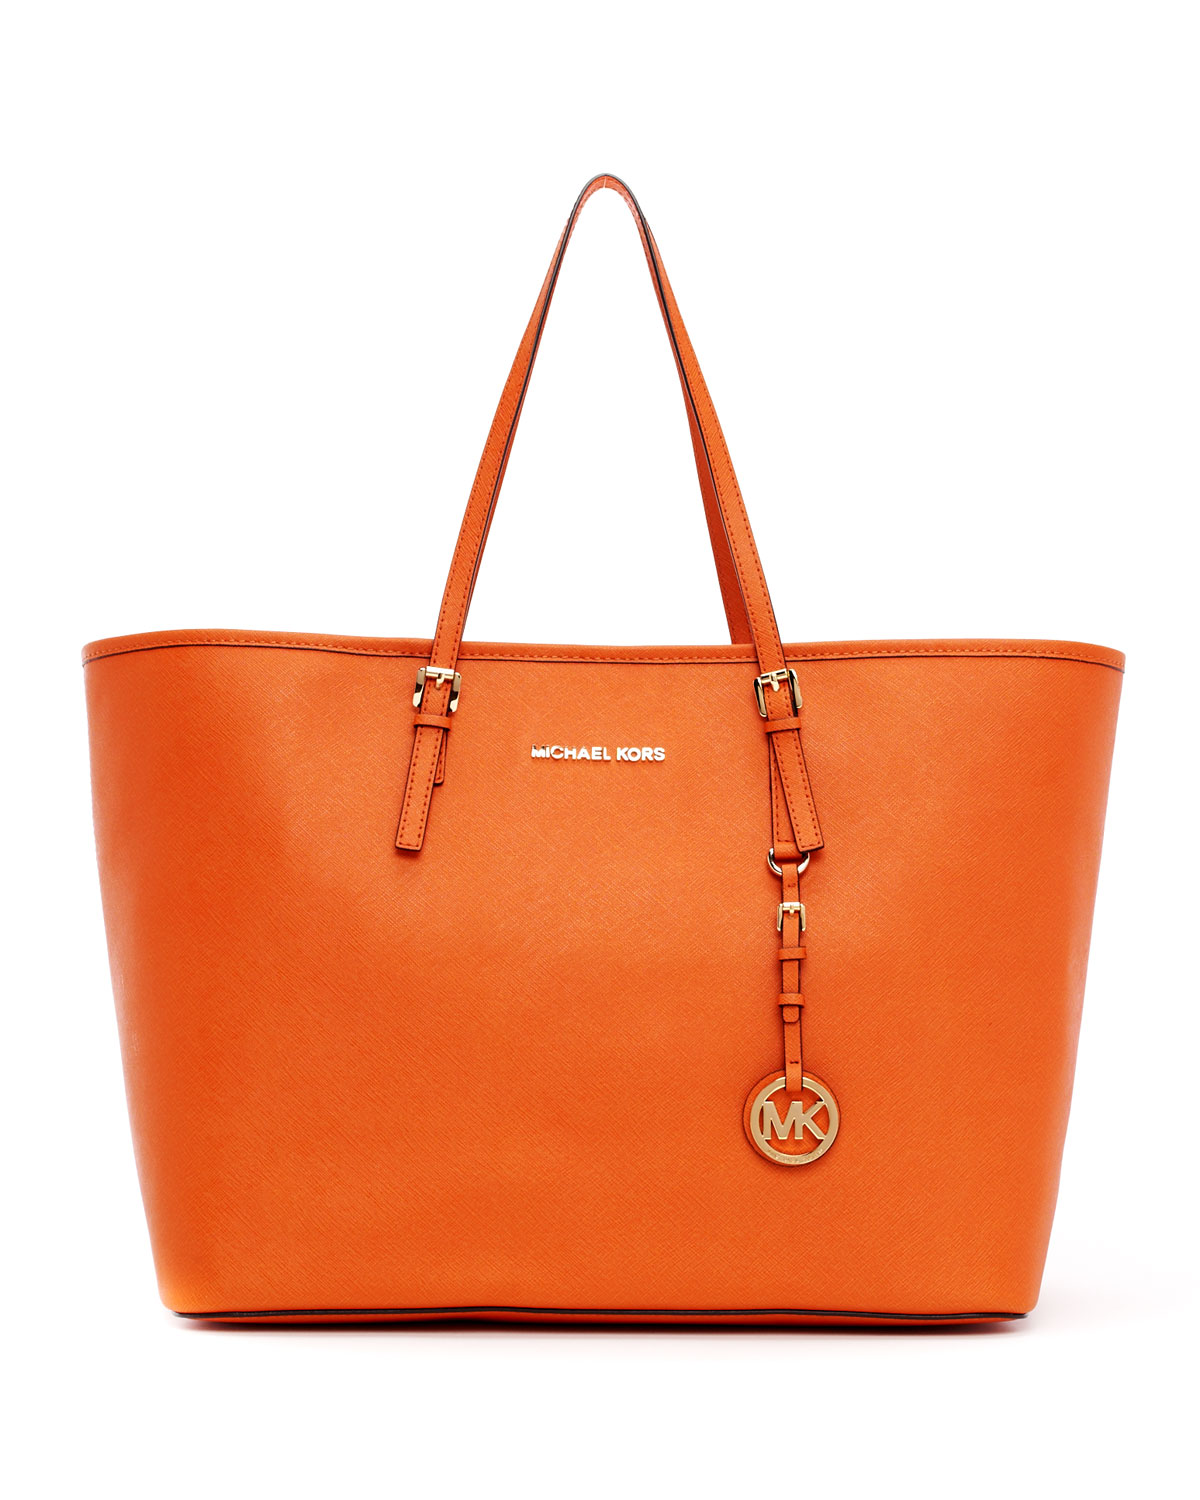 michael michael kors medium jet set saffiano travel tote bag in orange tangerine lyst. Black Bedroom Furniture Sets. Home Design Ideas